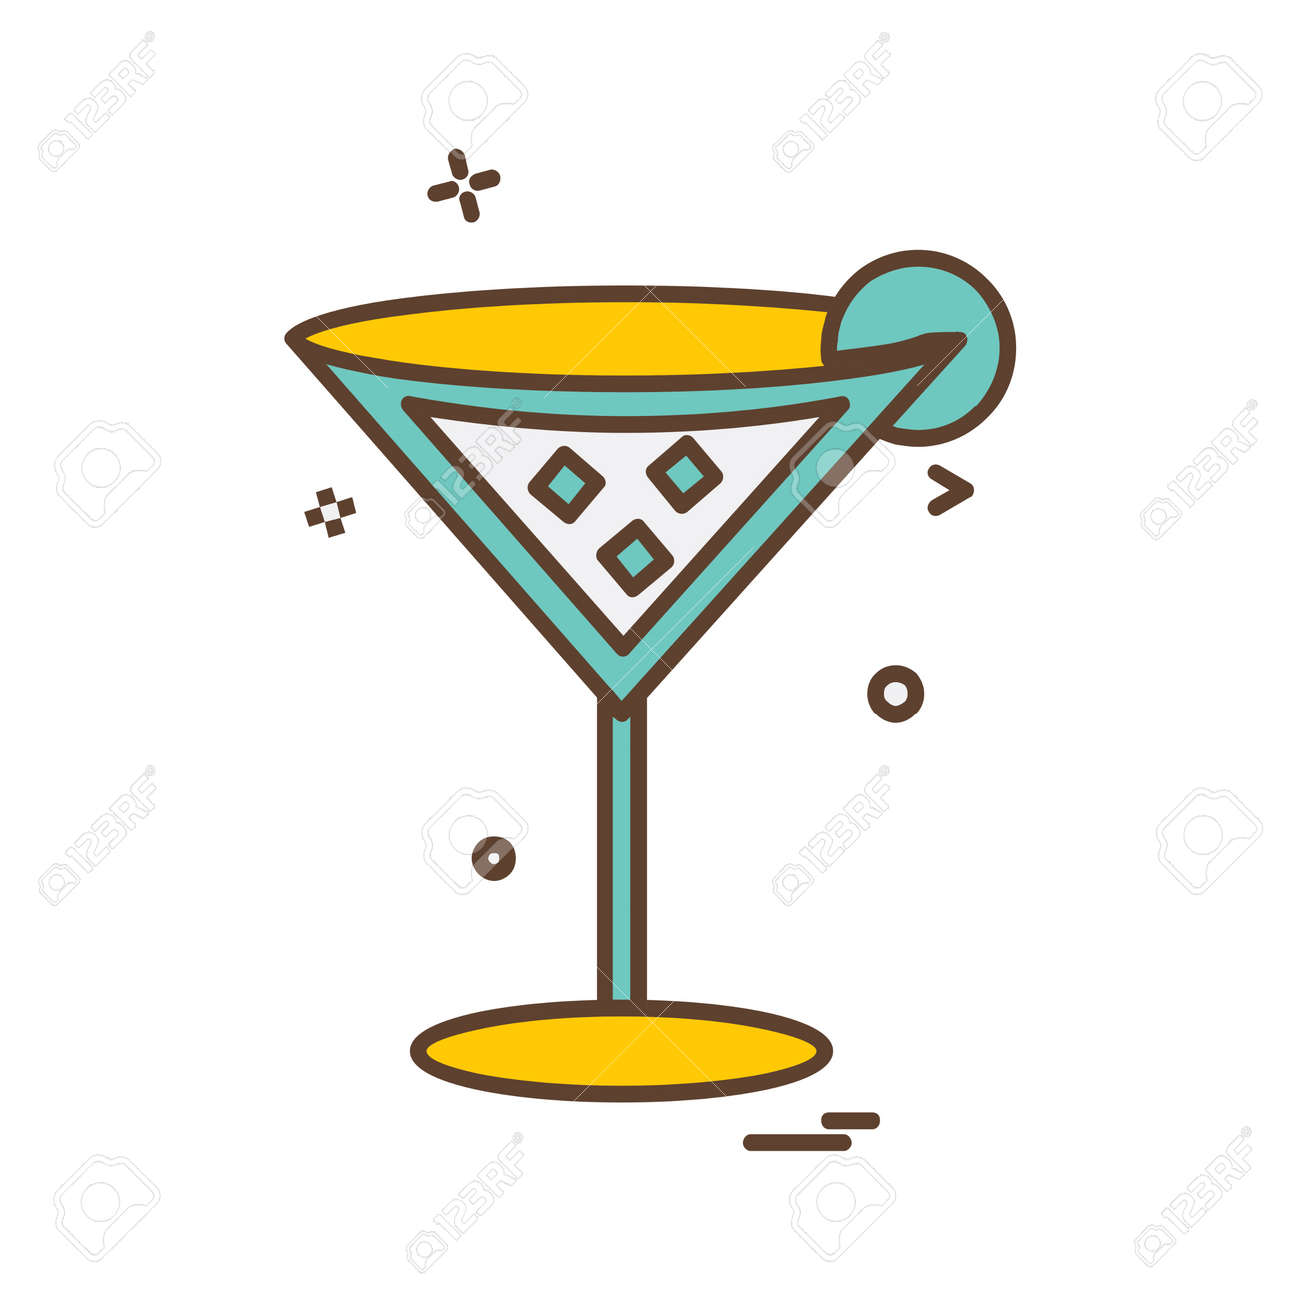 Image result for drinks icon